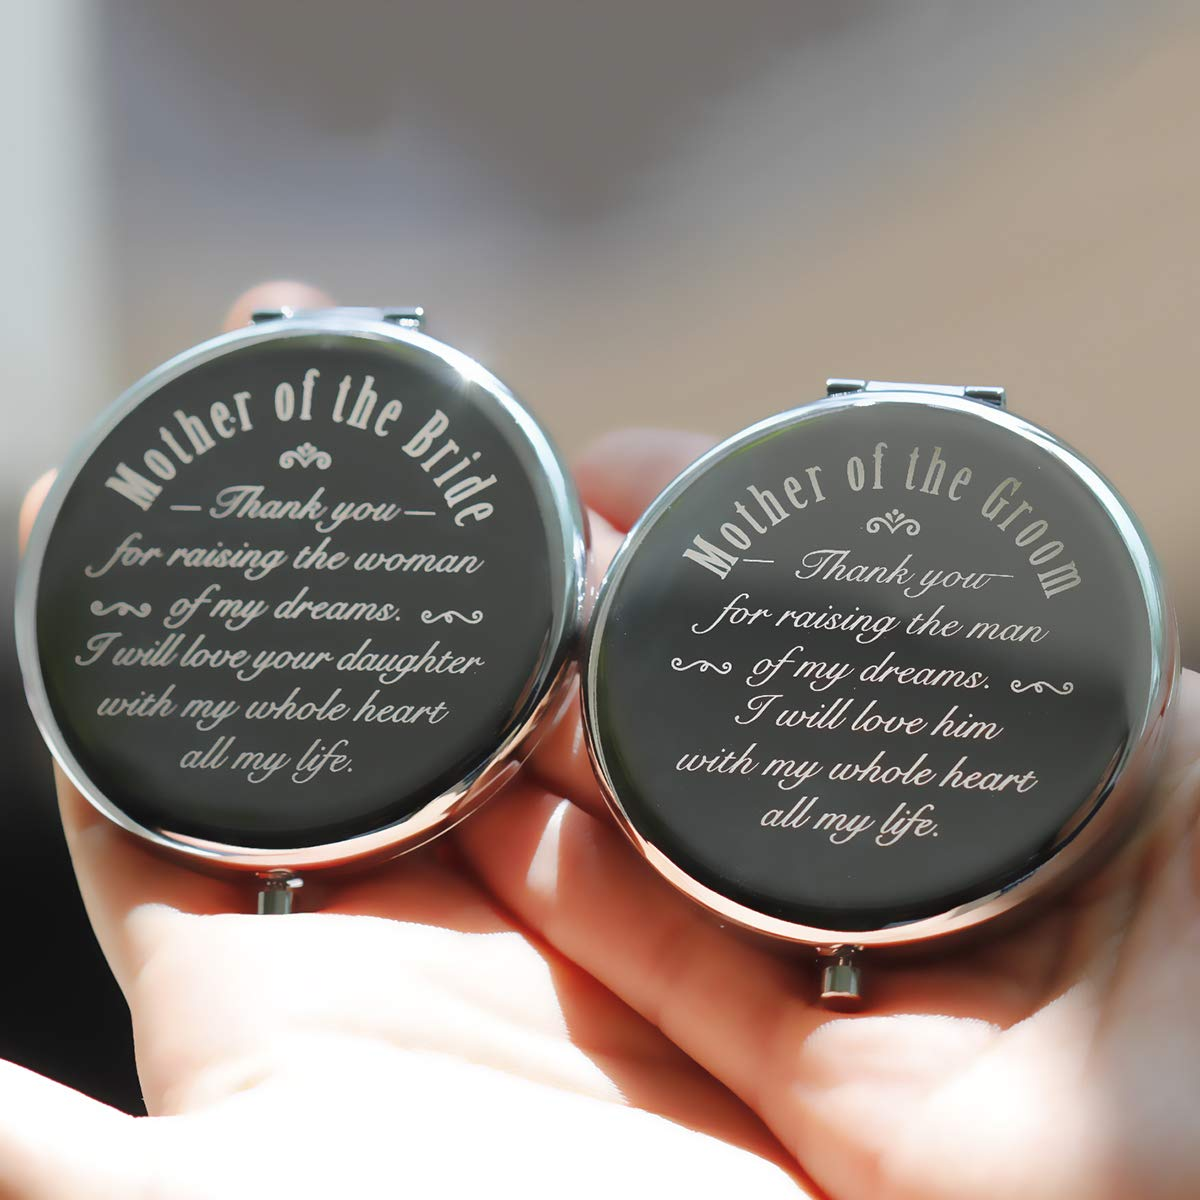 Mother of Bride and Groom, 2 Pieces,Unique Wedding Favor Gifts For Parents - Engagement Gifts For Mother In Law and Brides Mom-Makeup Mirror Silver